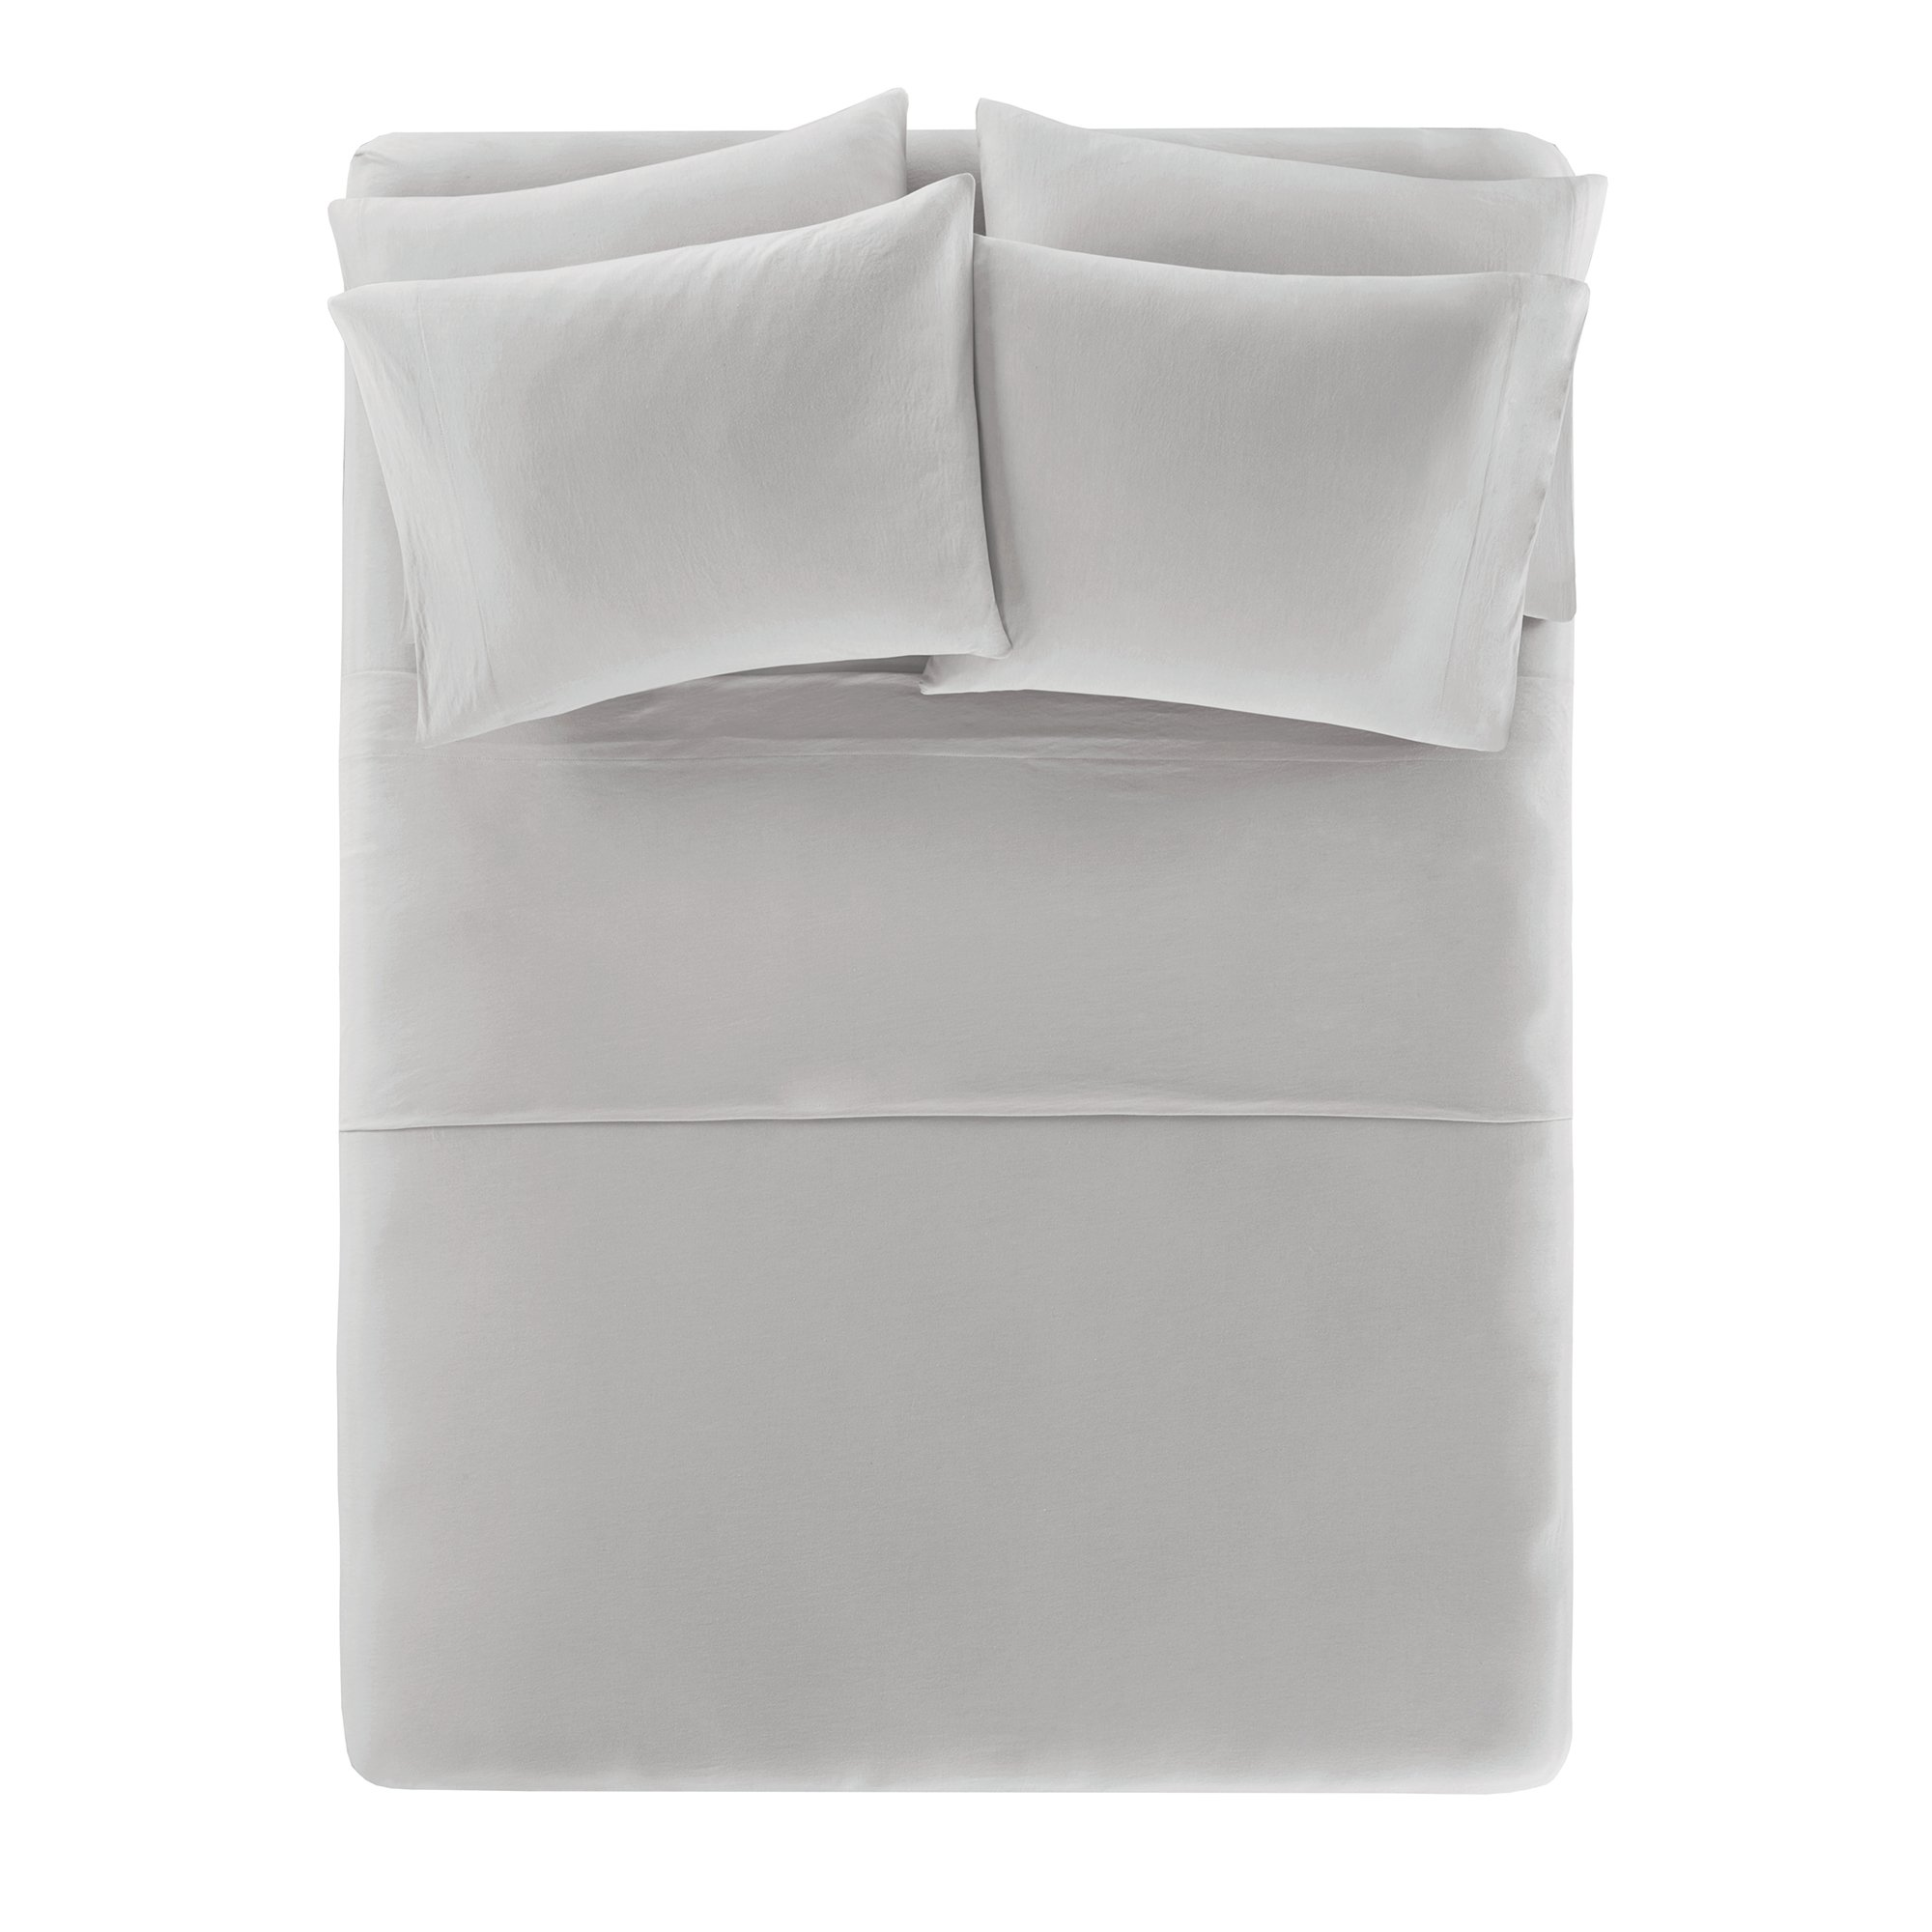 Comfort Spaces Cotton Jersey Knit Sheets Set Ultra Soft King Bed